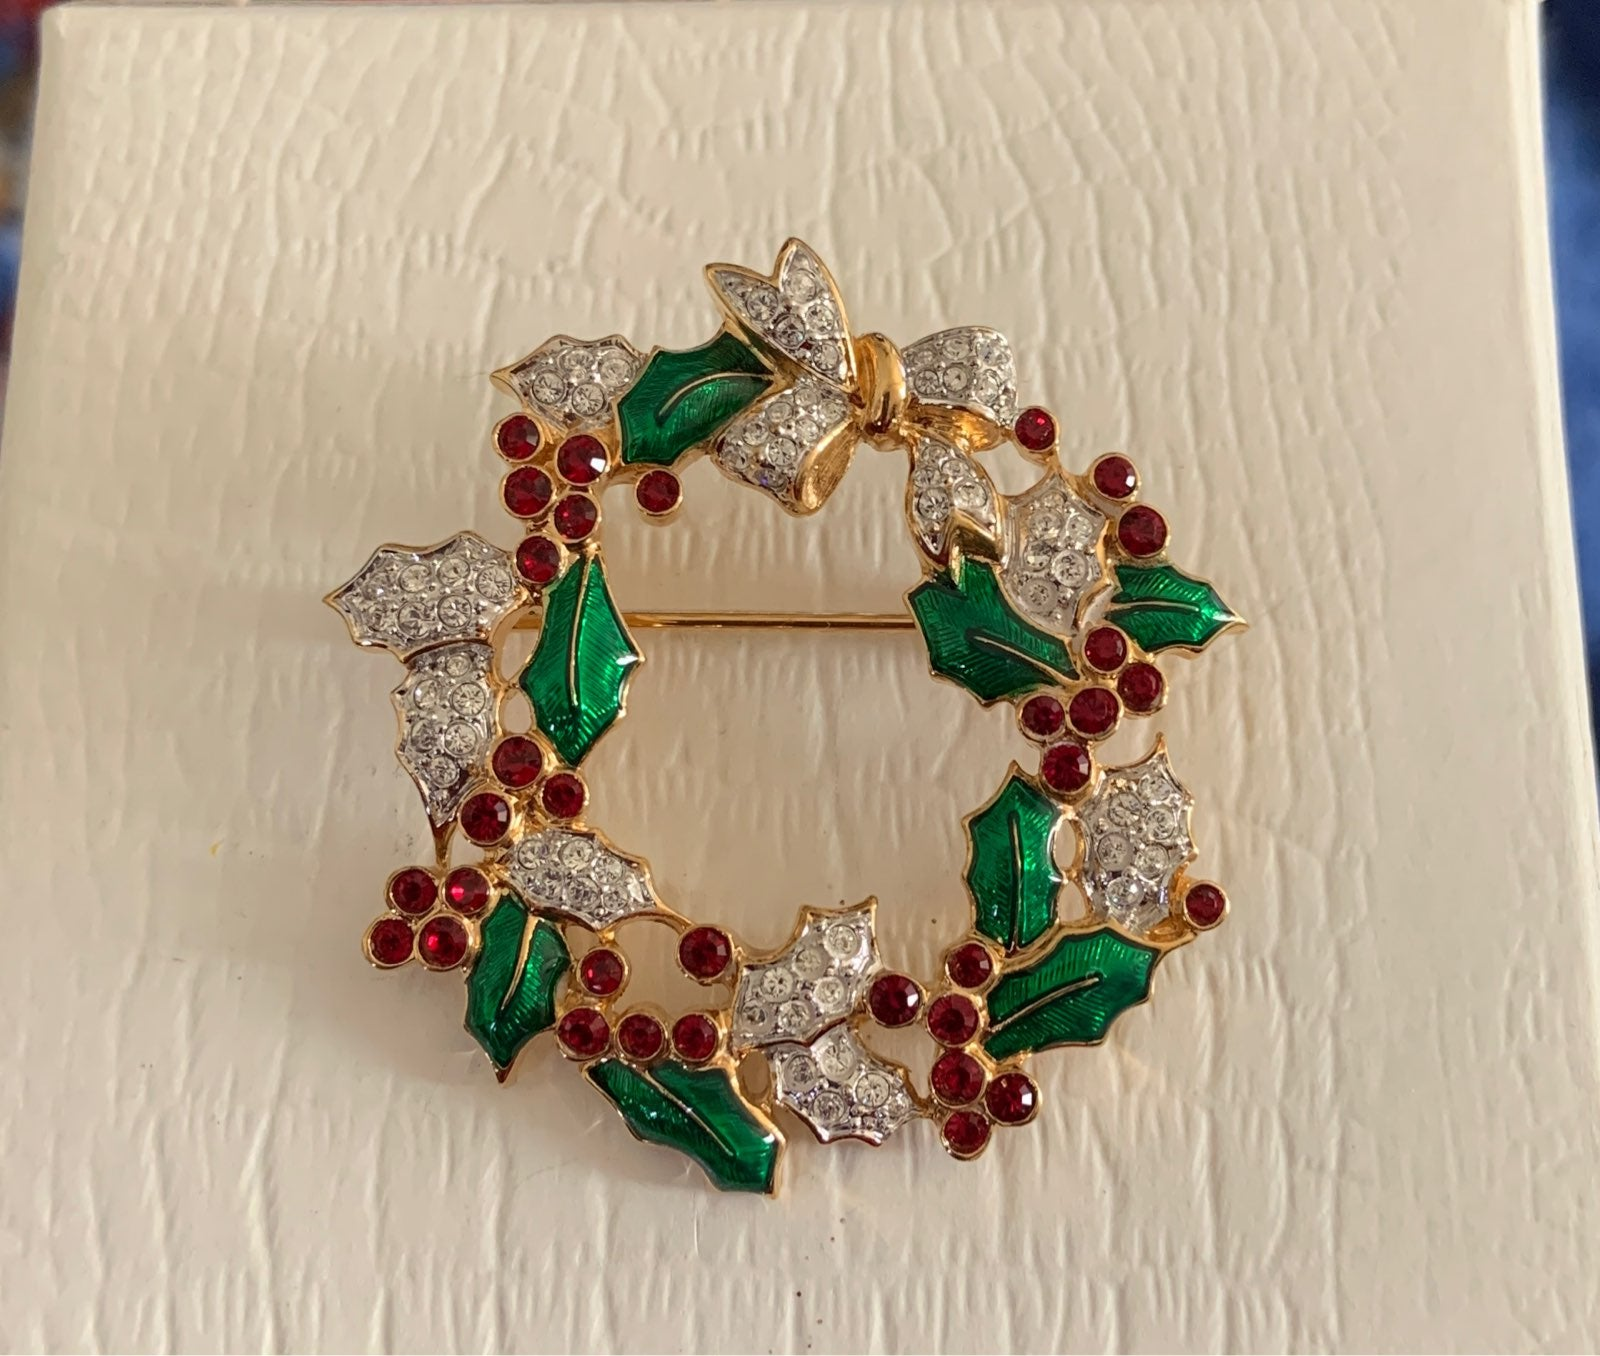 Signed Swarovski Crystal Wreath Brooch